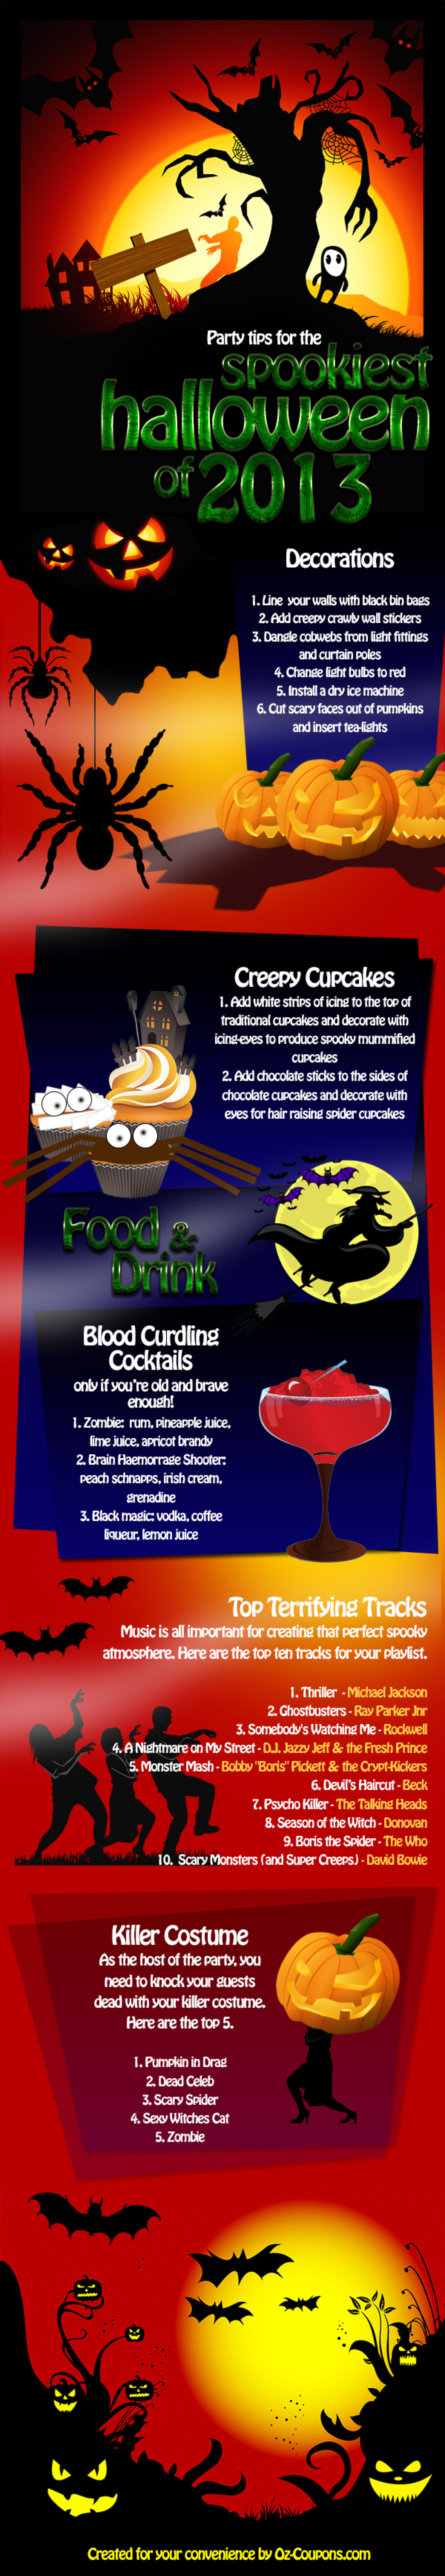 Party Tips for the Scariest Halloween of 2013 Infographic